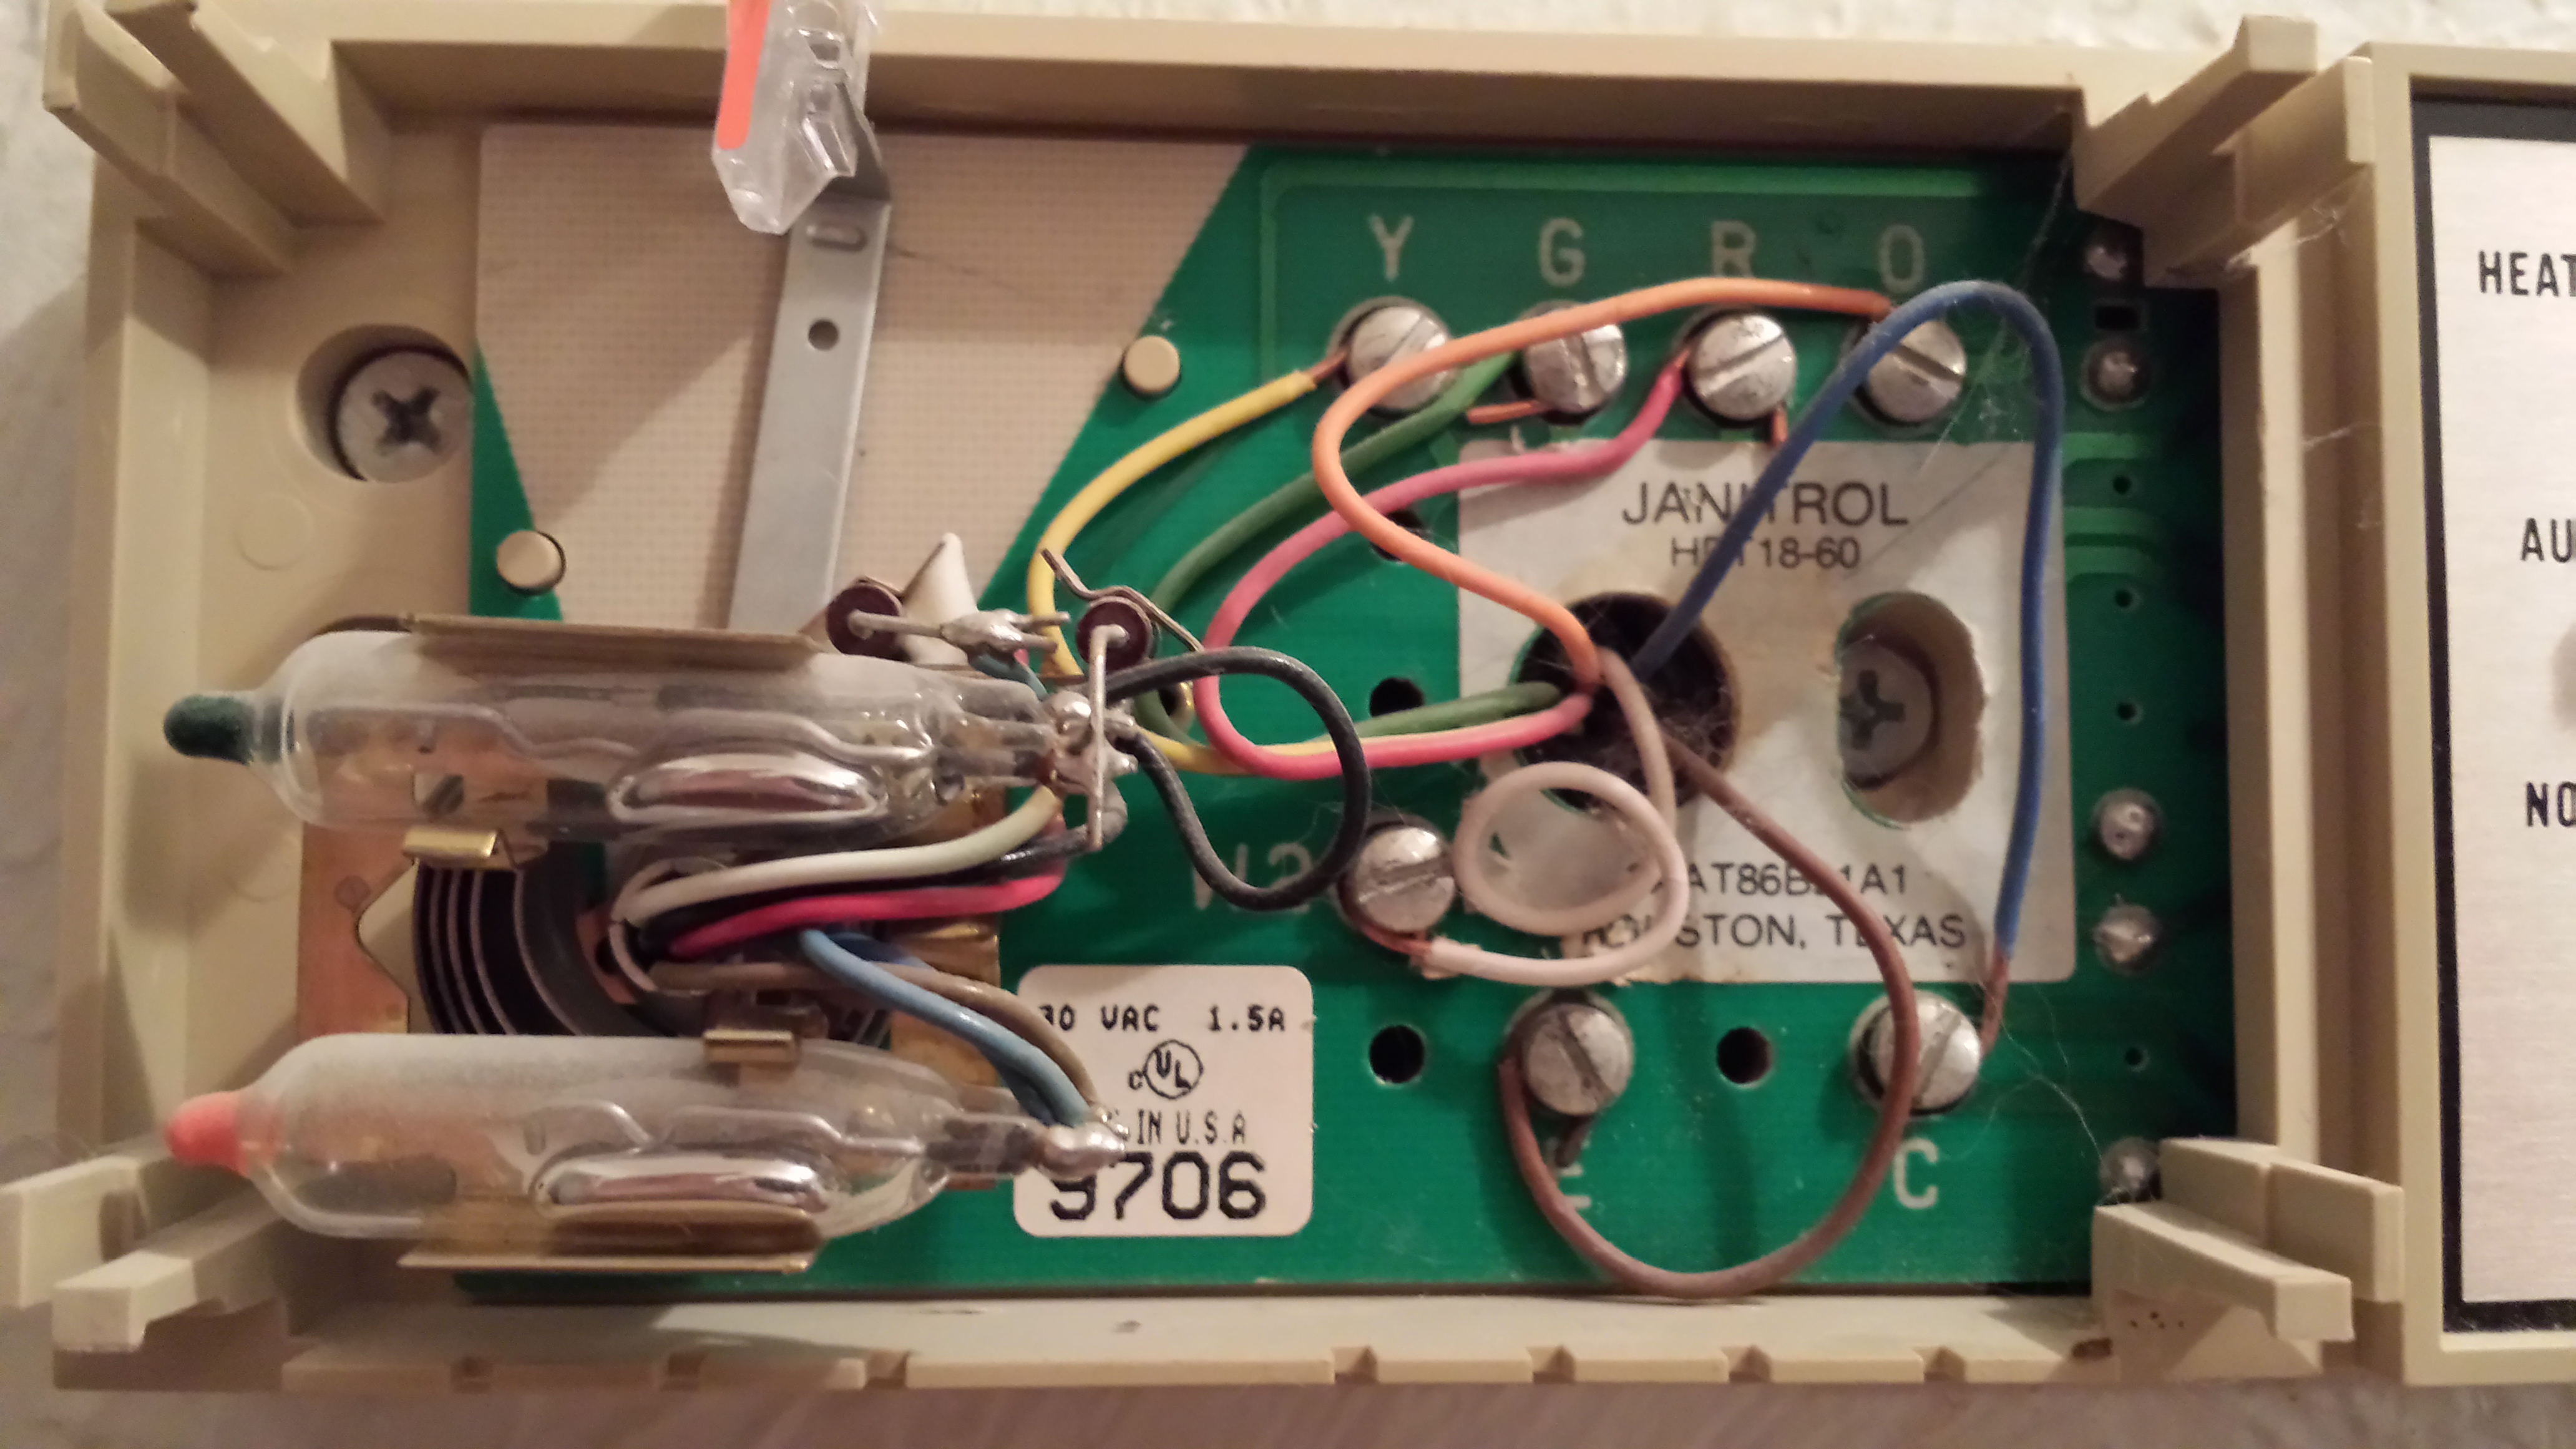 I am replacing a Janitrol HPT18-60 thermostat with a ... Janitrol Hpt Wiring Diagram on centurion wiring diagram, weather king wiring diagram, lochinvar wiring diagram, general wiring diagram, concord wiring diagram, payne wiring diagram, sears wiring diagram, crosley wiring diagram, columbia wiring diagram, panasonic wiring diagram, estate wiring diagram, broan wiring diagram, roper wiring diagram, johnson controls wiring diagram, heat controller wiring diagram, marvair wiring diagram, climatrol wiring diagram, goettl wiring diagram, viking wiring diagram, evcon wiring diagram,